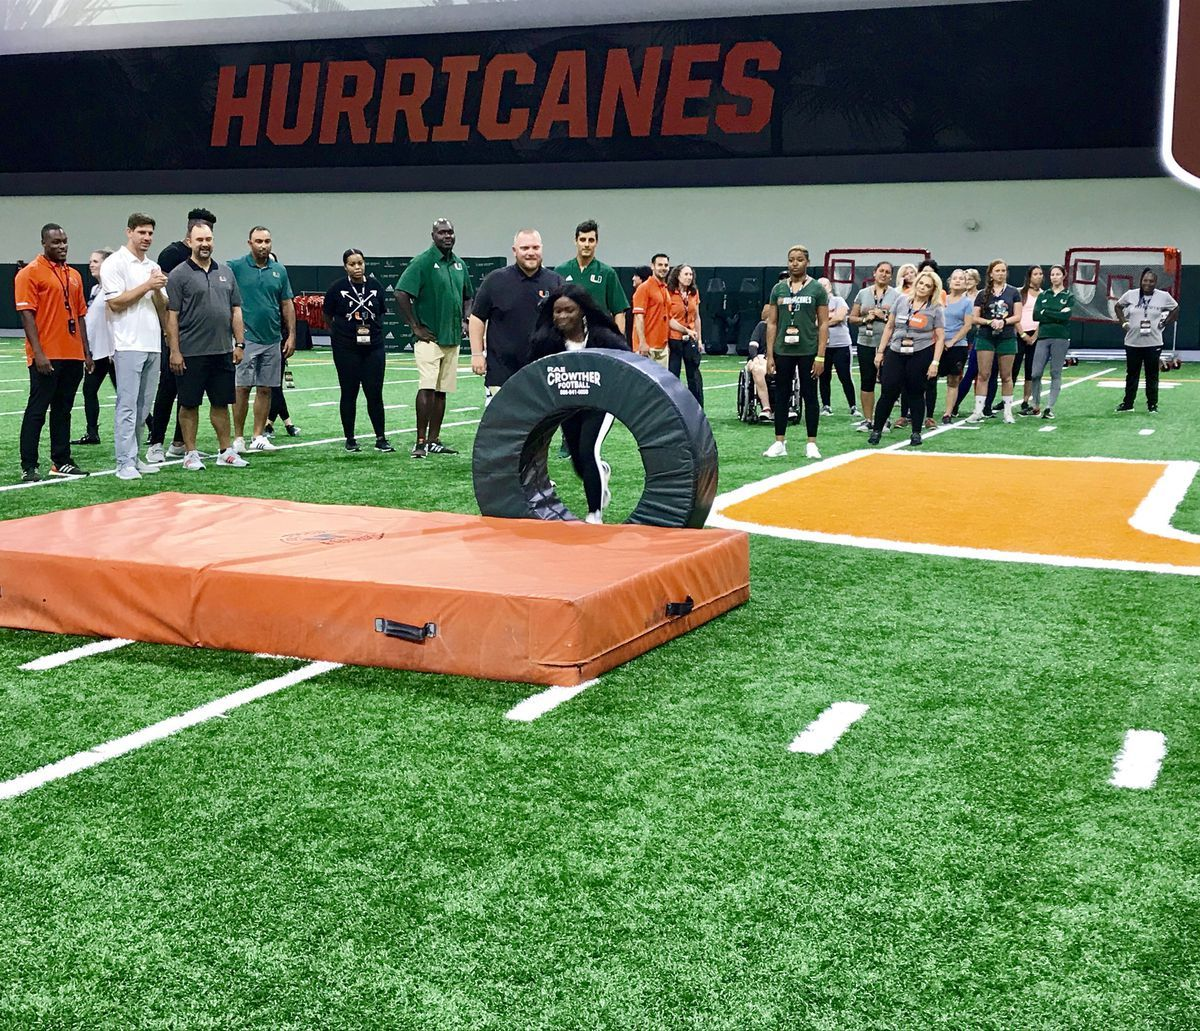 Manny diaz staff take select group of fans behind the